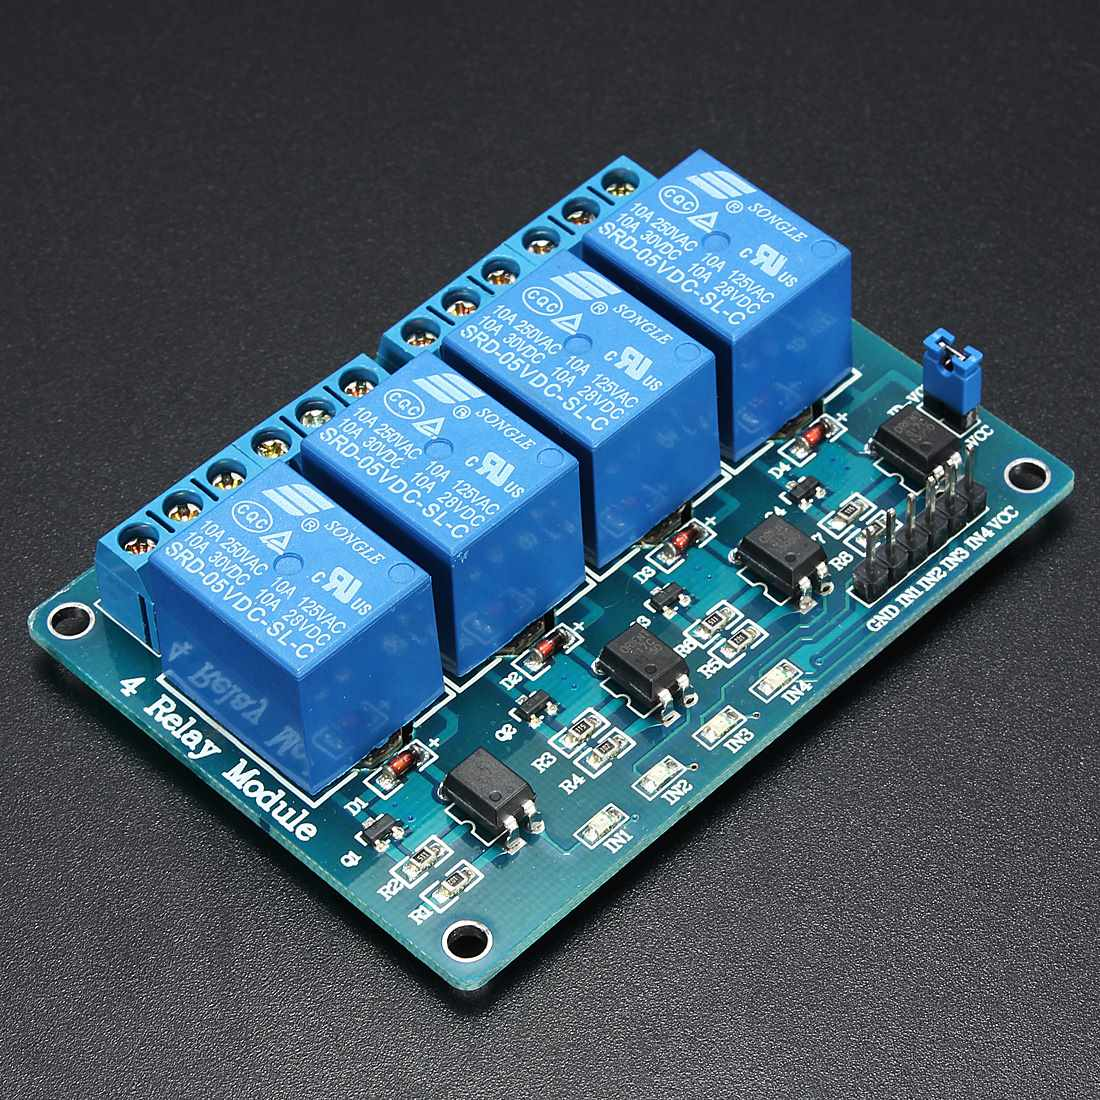 Buy New Electric Msp430 4 Channel 5v Relay Module The Newer Universal Remote Control Circuit With A Low Strigger For Arduino Pic Arm Dsp Avr Blue From Reliable Suppliers On